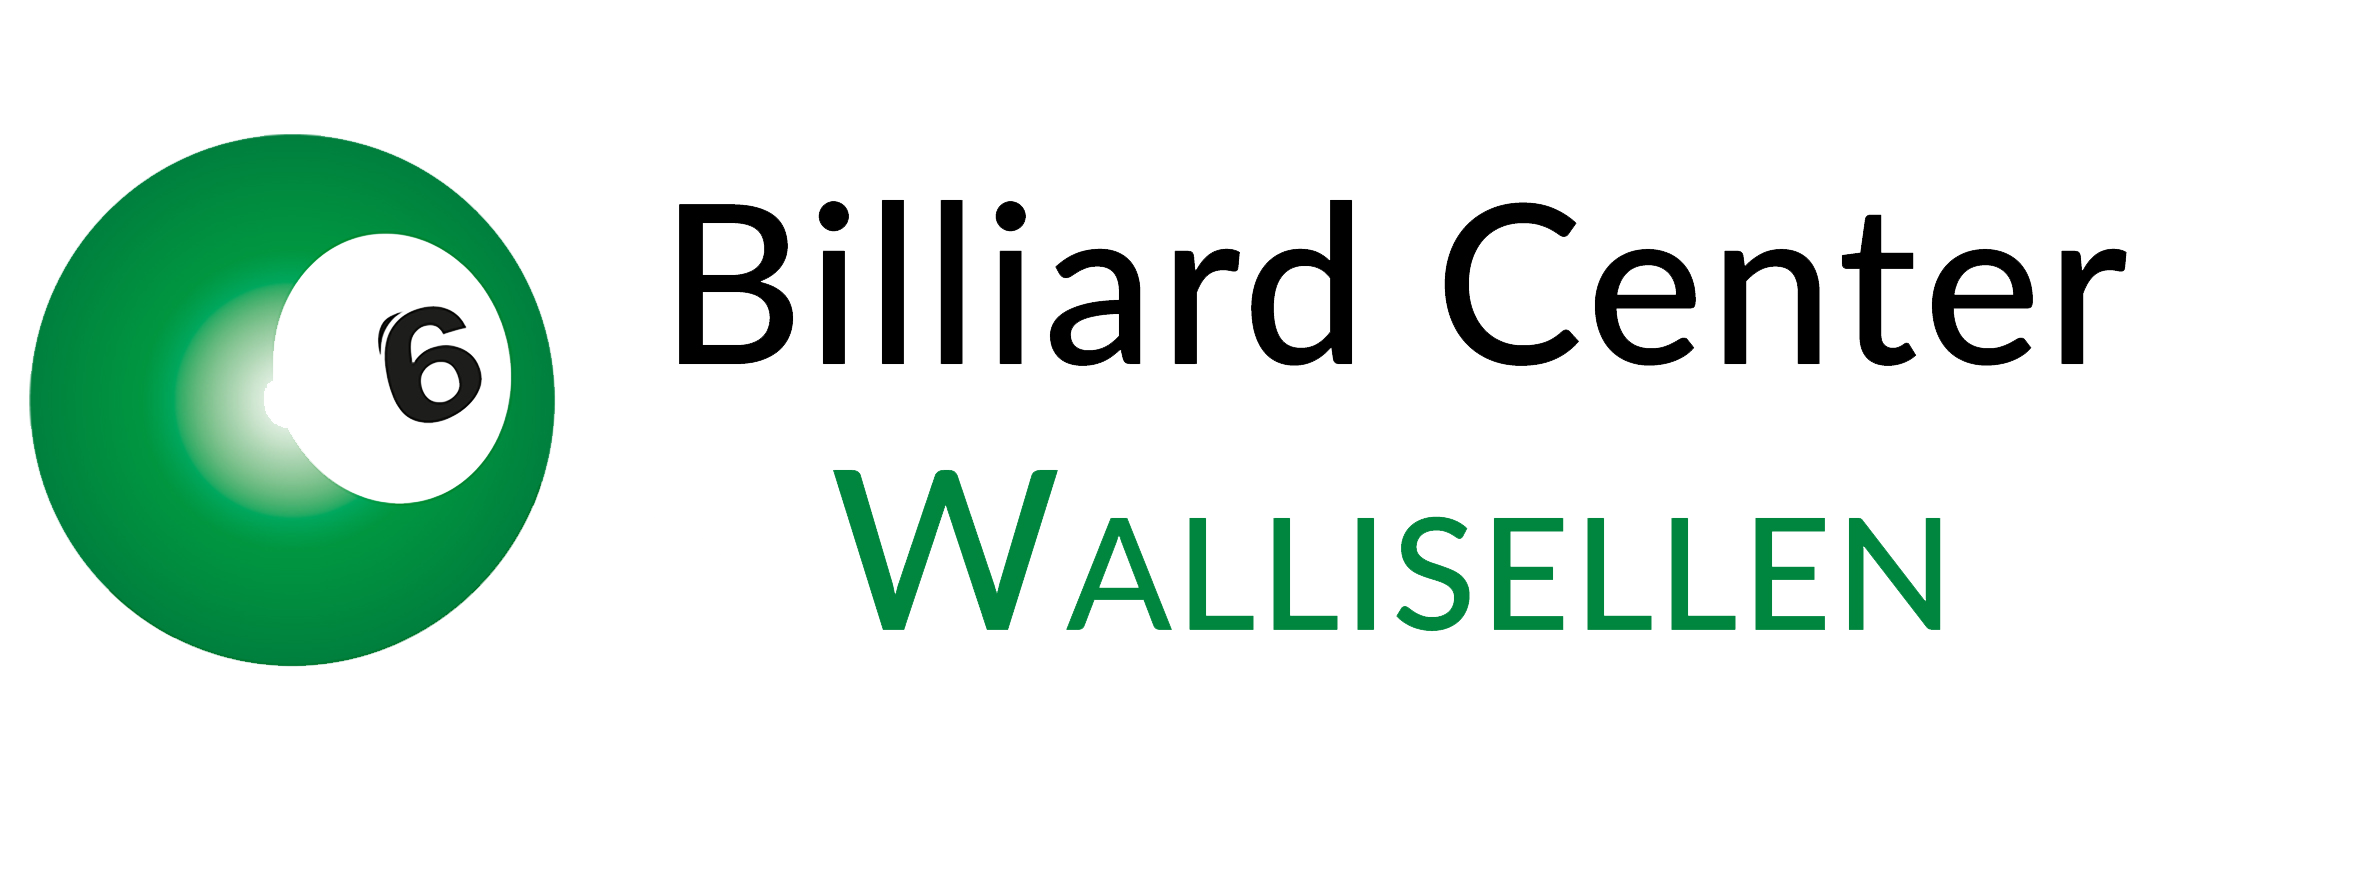 www.billiard-center.ch